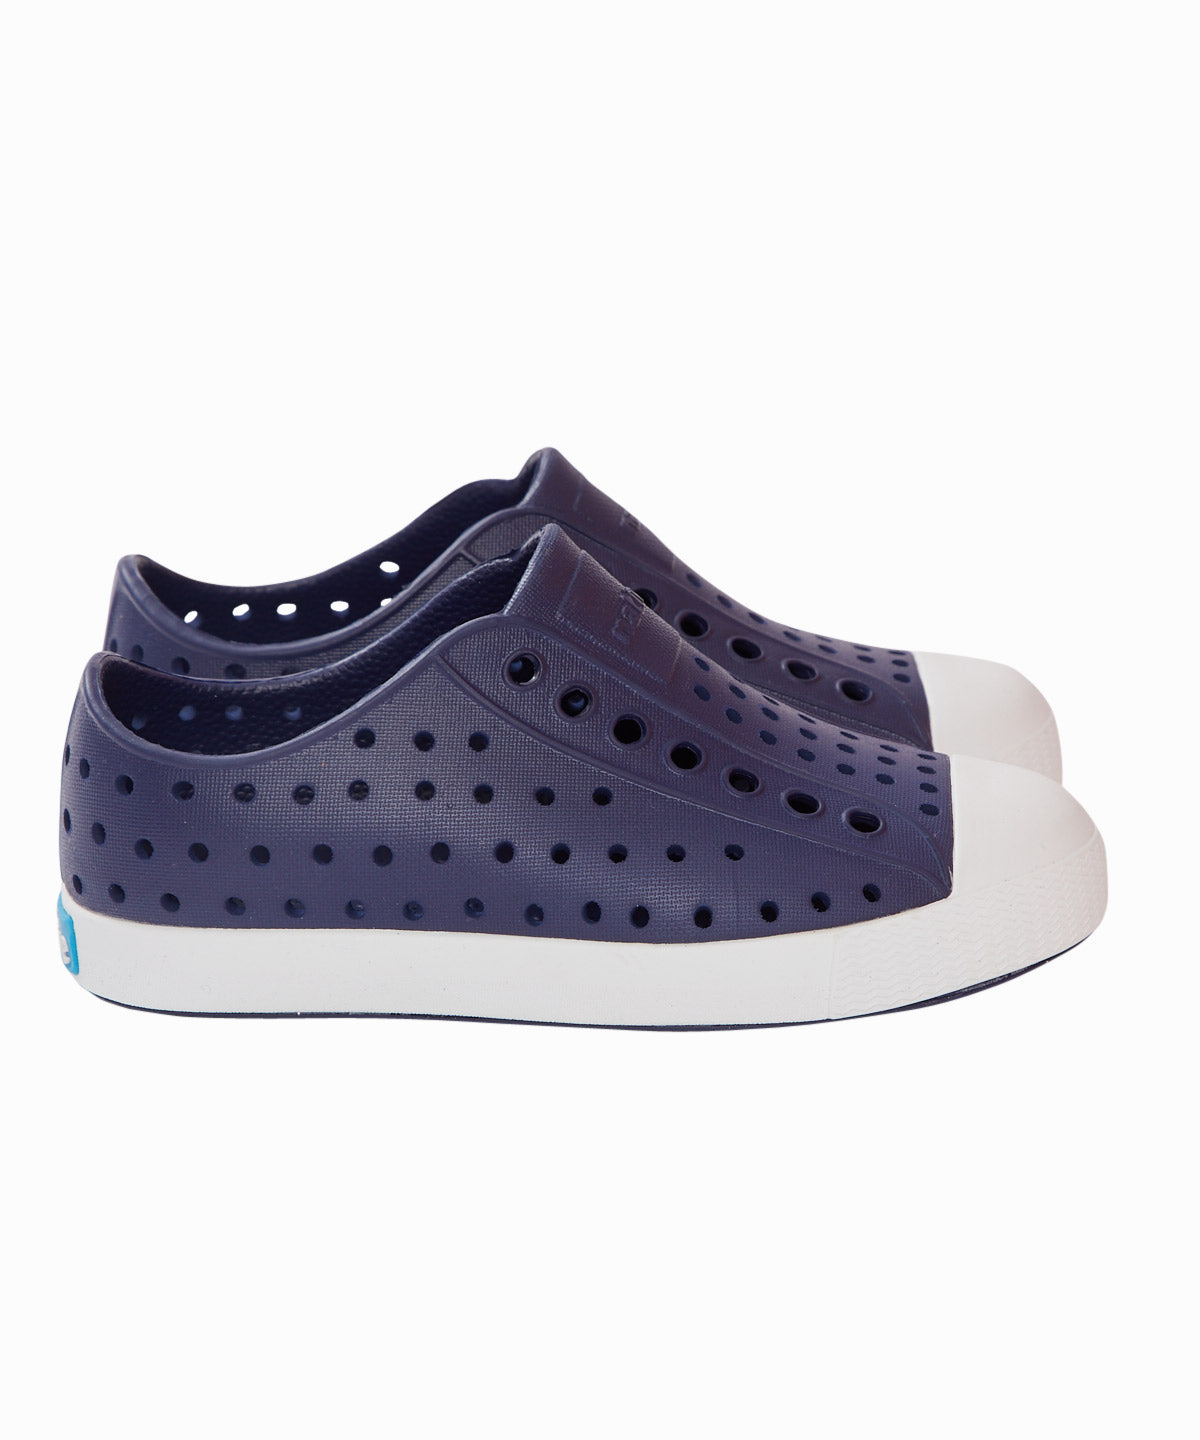 Jefferson Regatta Blue Slip-On Sneakers